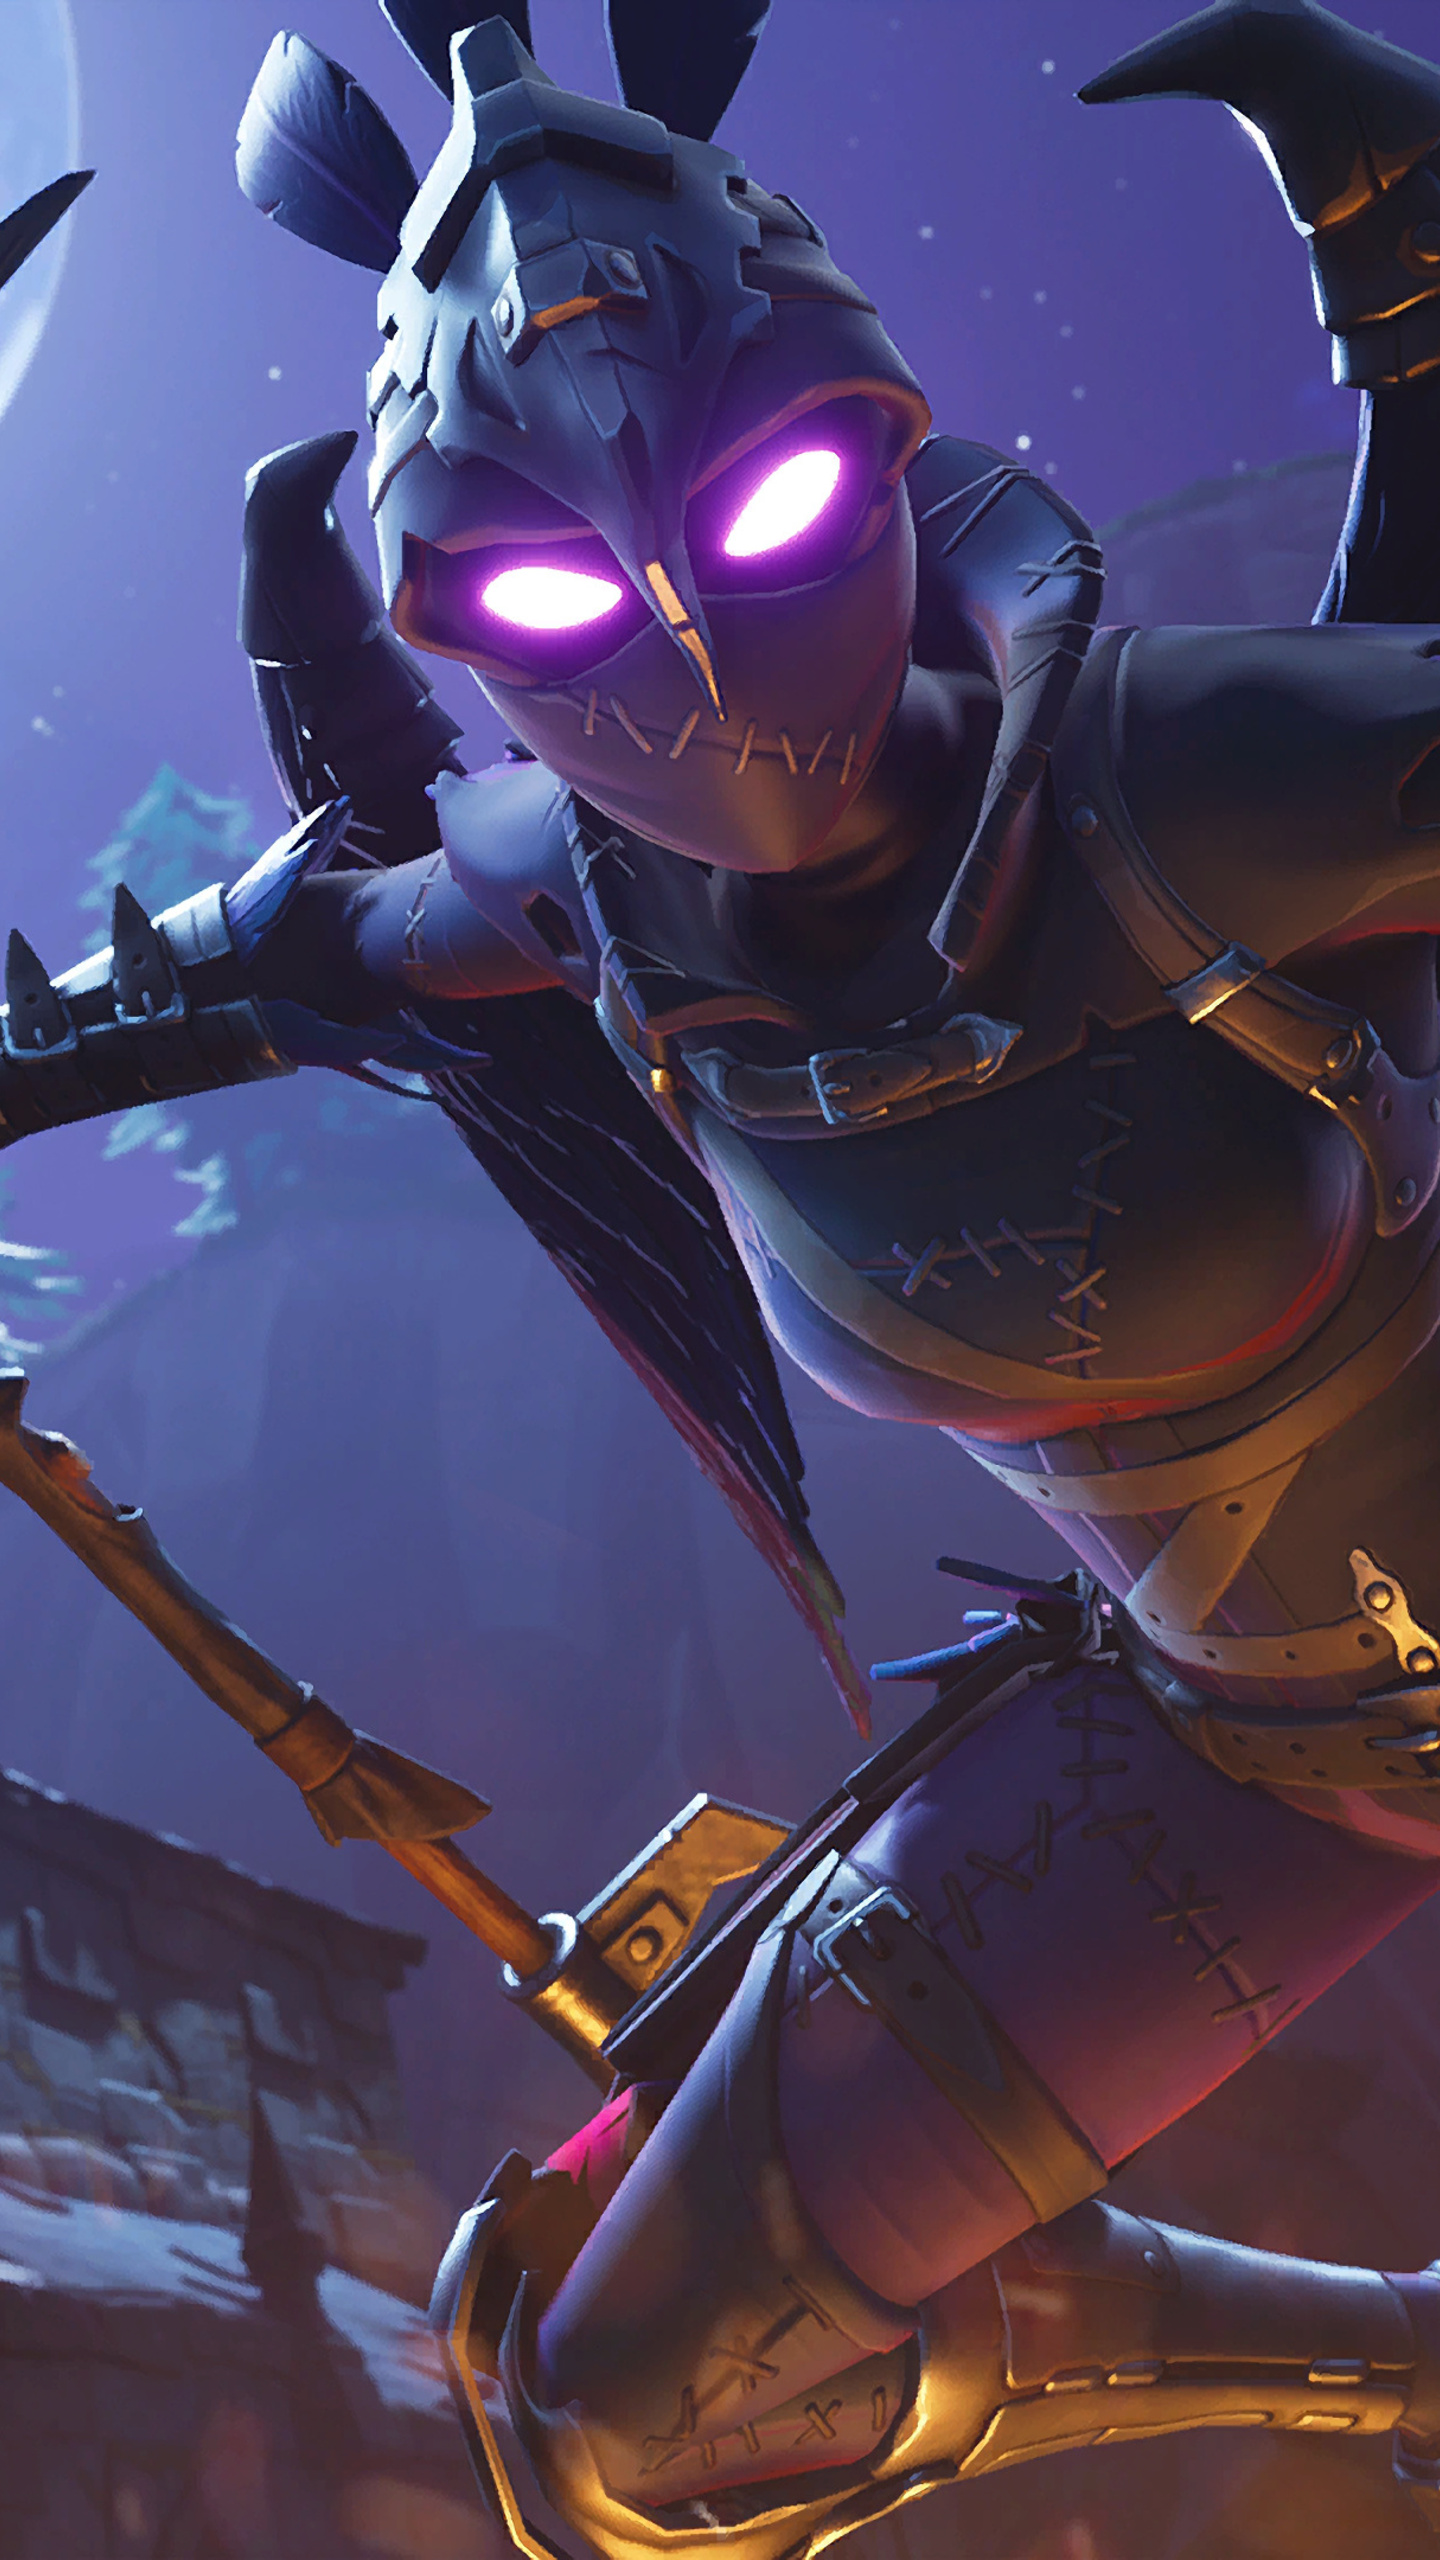 ravage-fortnite-battle-royale-season-6-4k-s7.jpg